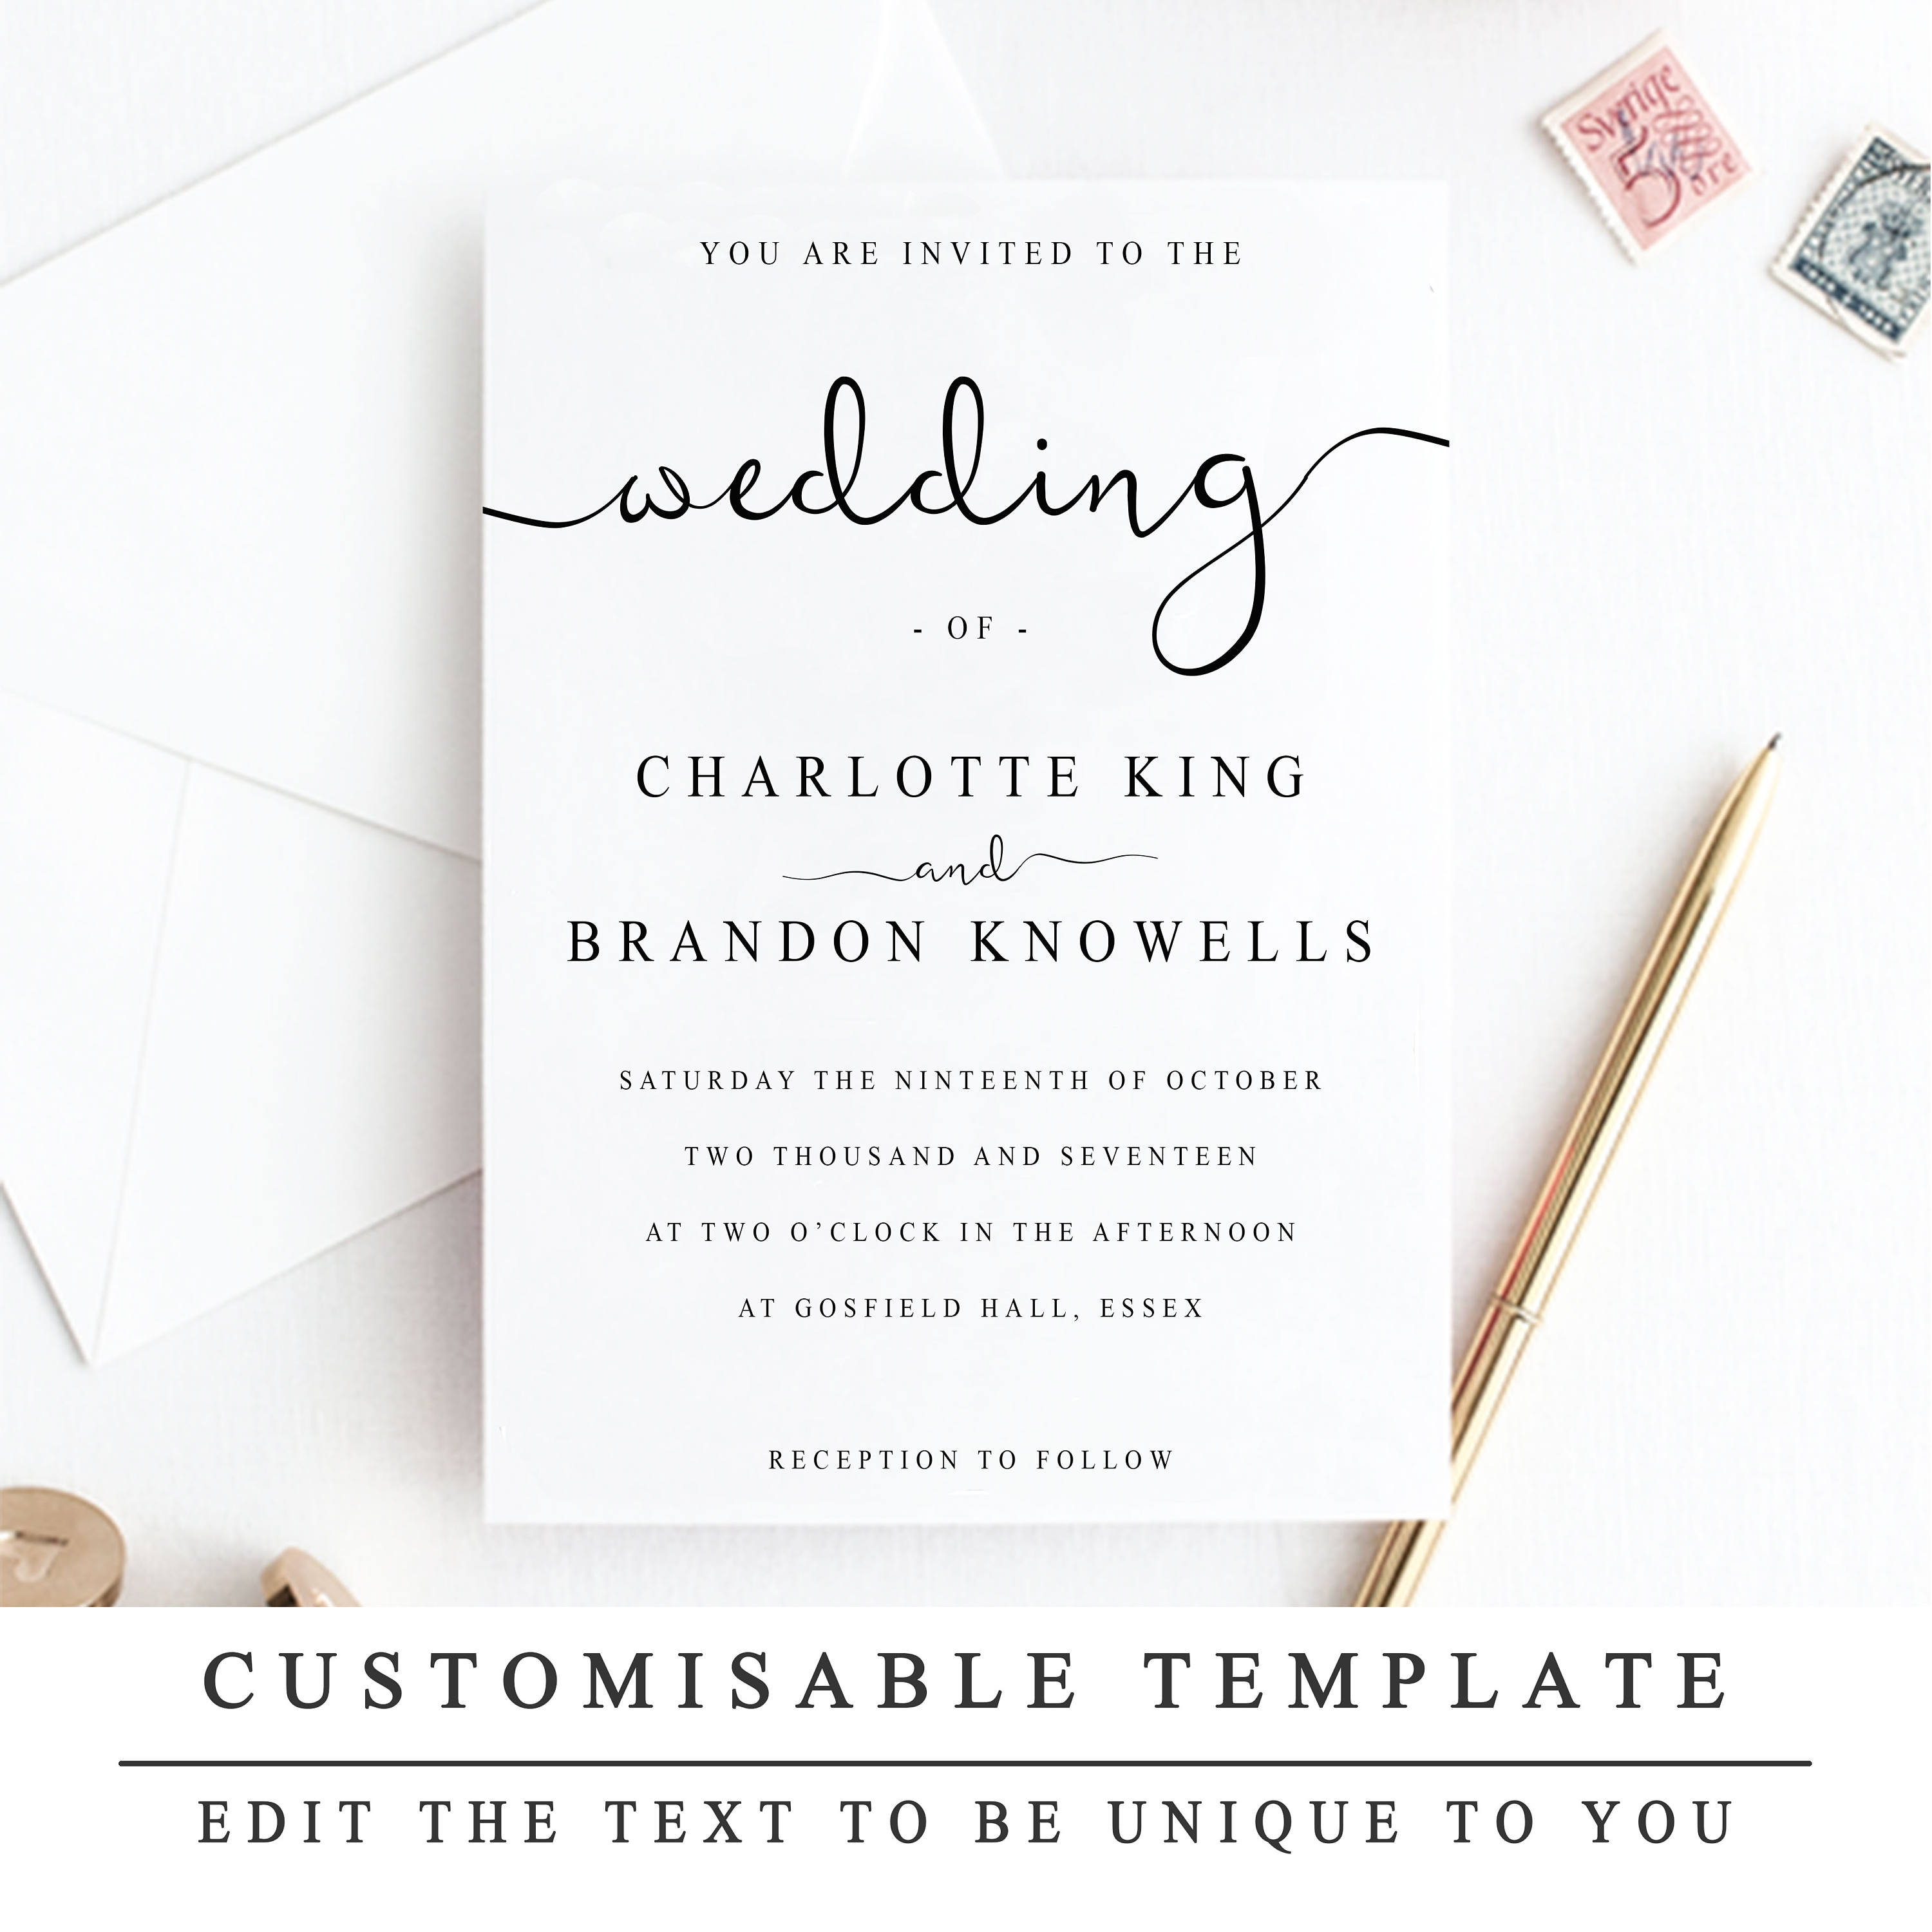 Print At Home Wedding Invitation Template DIY Instantly Printable 2 Sizes INSTANT DOWNLOAD